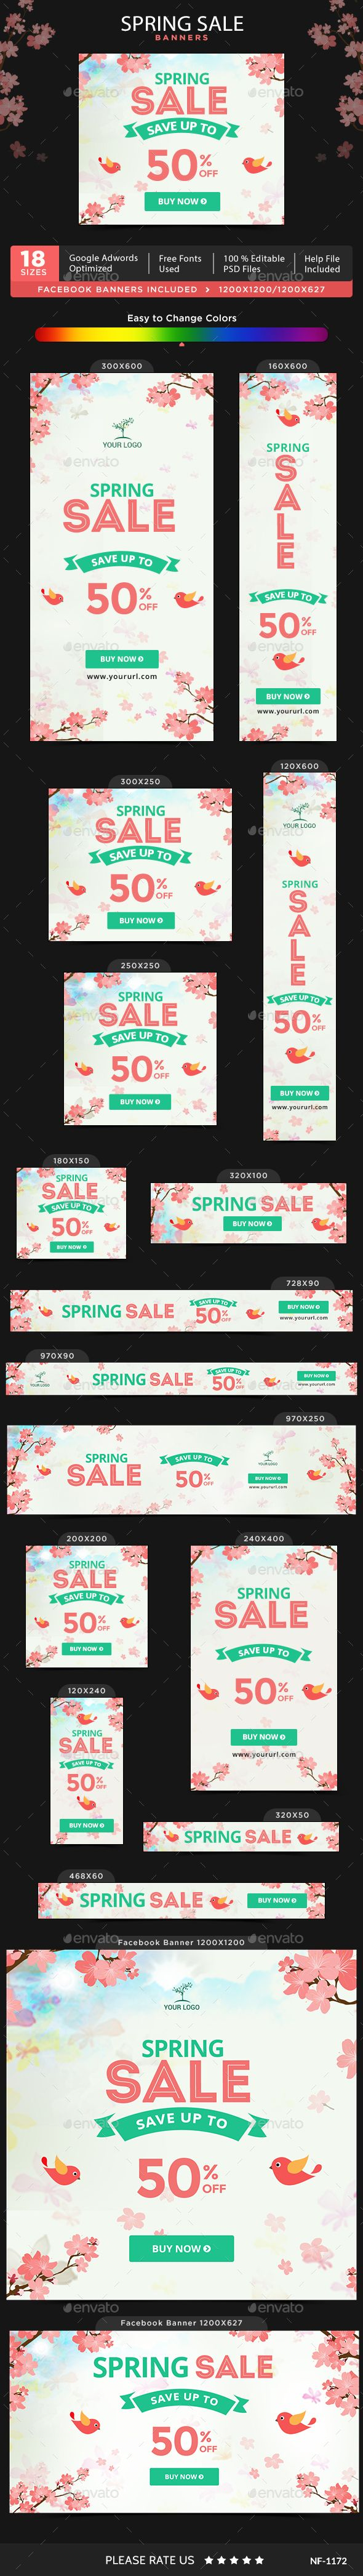 Spring Sale Banners Template PSD. Download here: http://graphicriver.net/item/spring-sale-banners/15374850?ref=ksioks